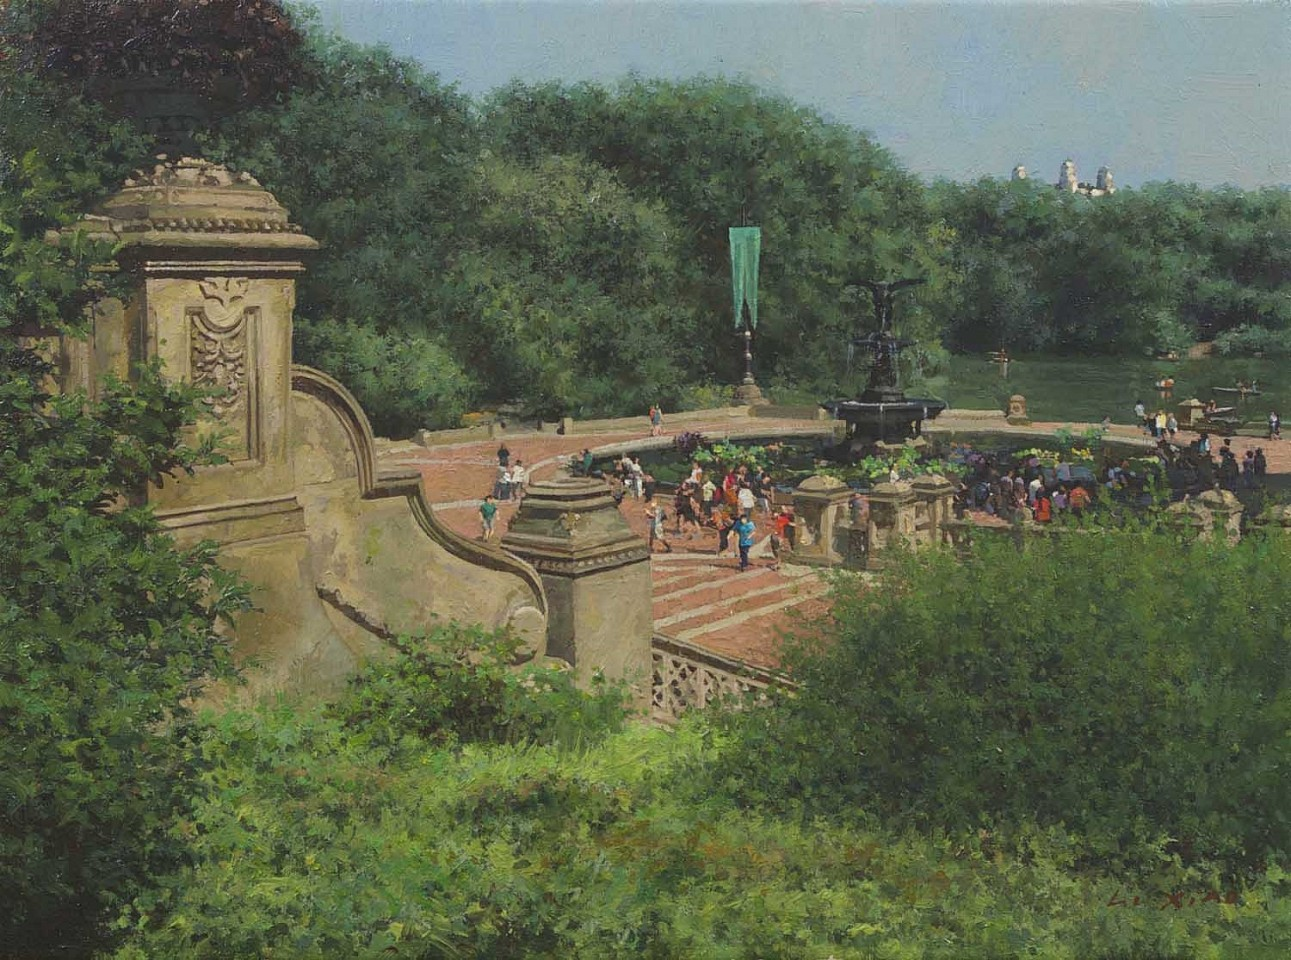 Li Xiao ,   Summer at Bethesda Fountain  ,  2015     oil on canvas ,  12 x 16 in. (30.5 x 40.6 cm)     LX151001